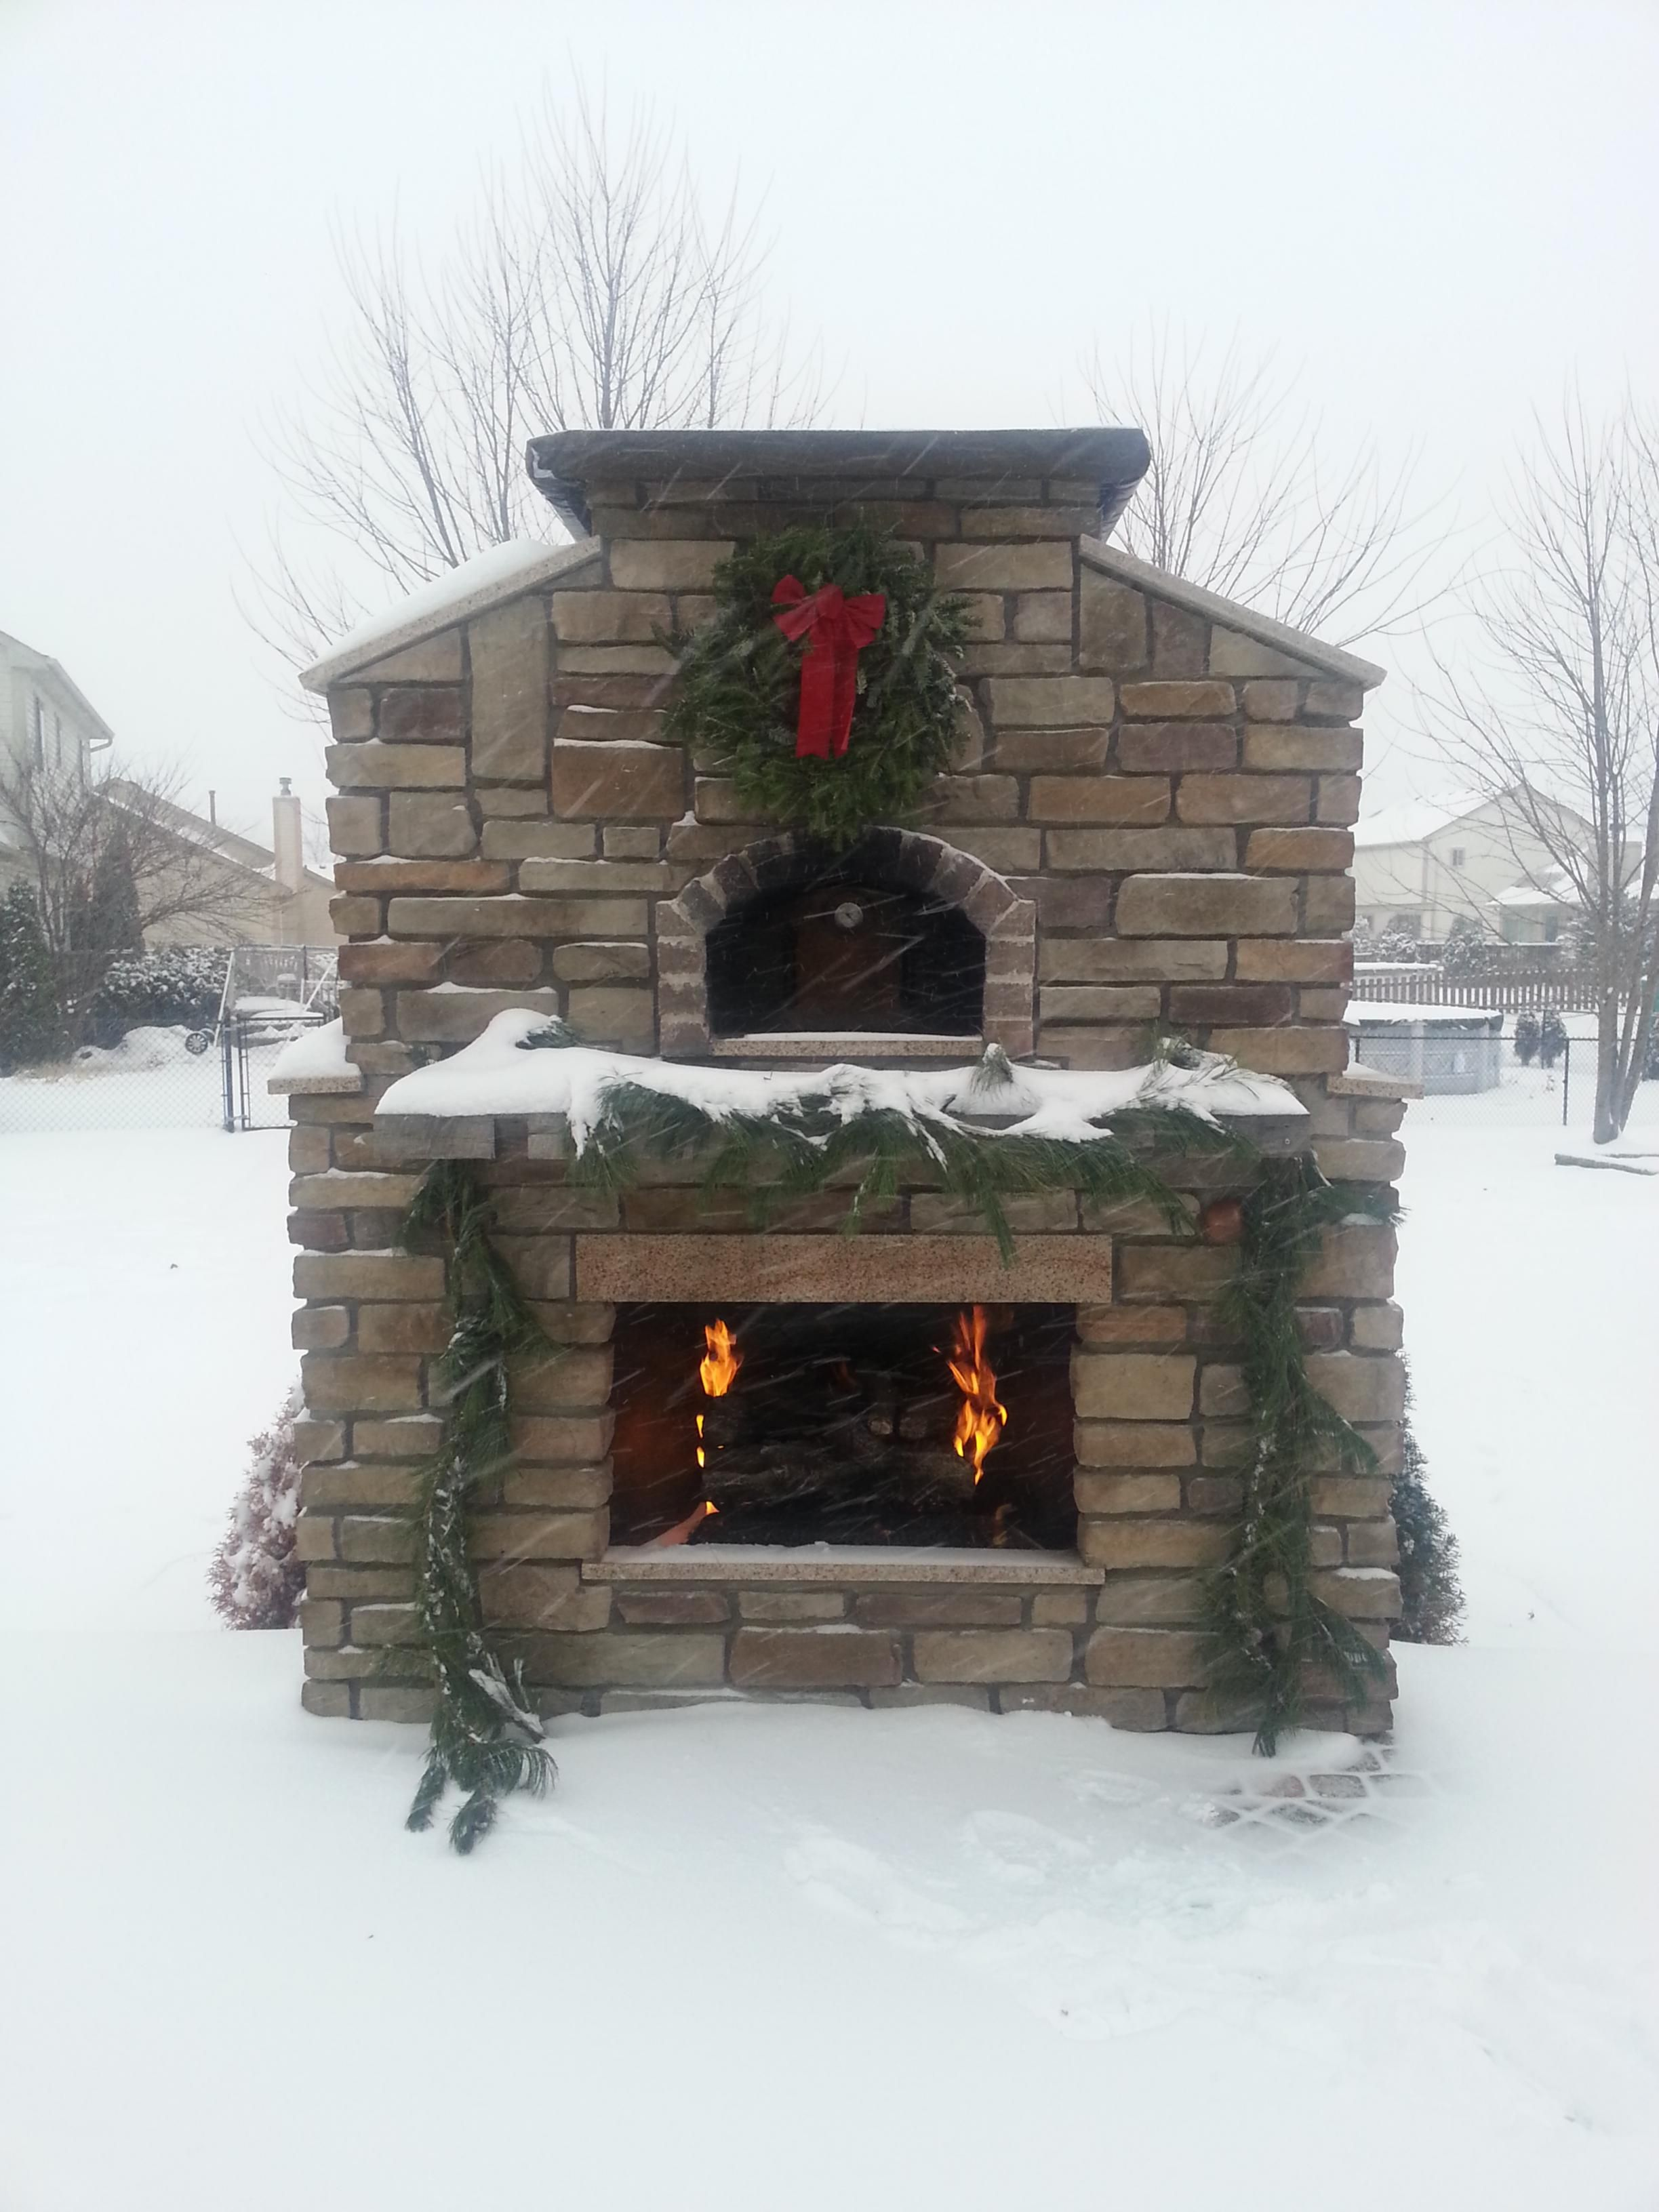 Bake Oven / Fireplace Combination Heat Kit | Search Results | Kudo  Outdoor Fireplace And Pizza Oven